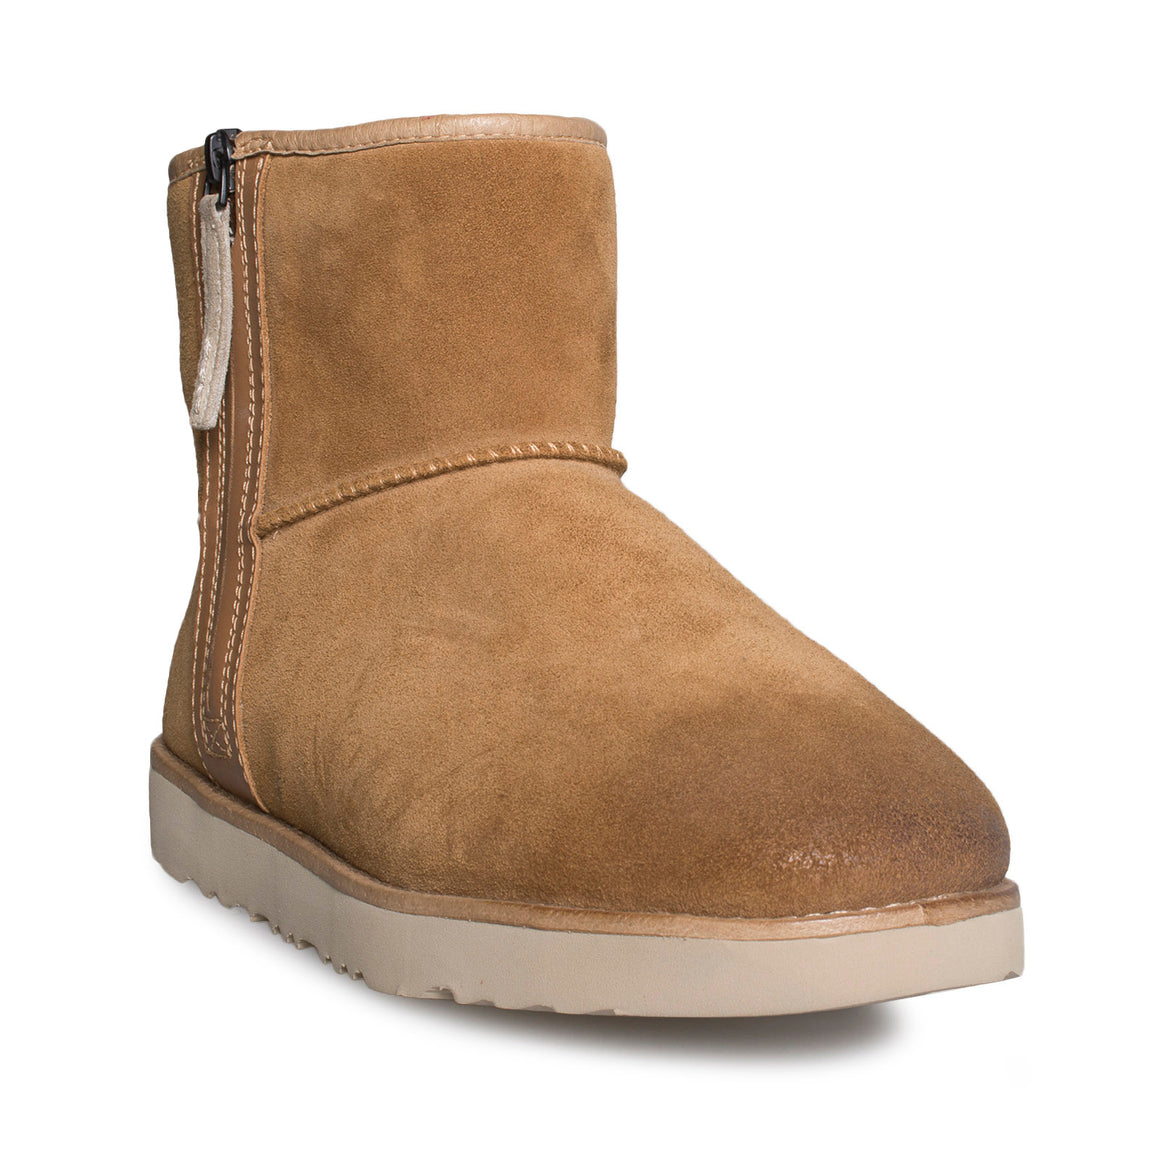 UGG Classic Mini Zip Waterproof Chestnut Boots - Men's